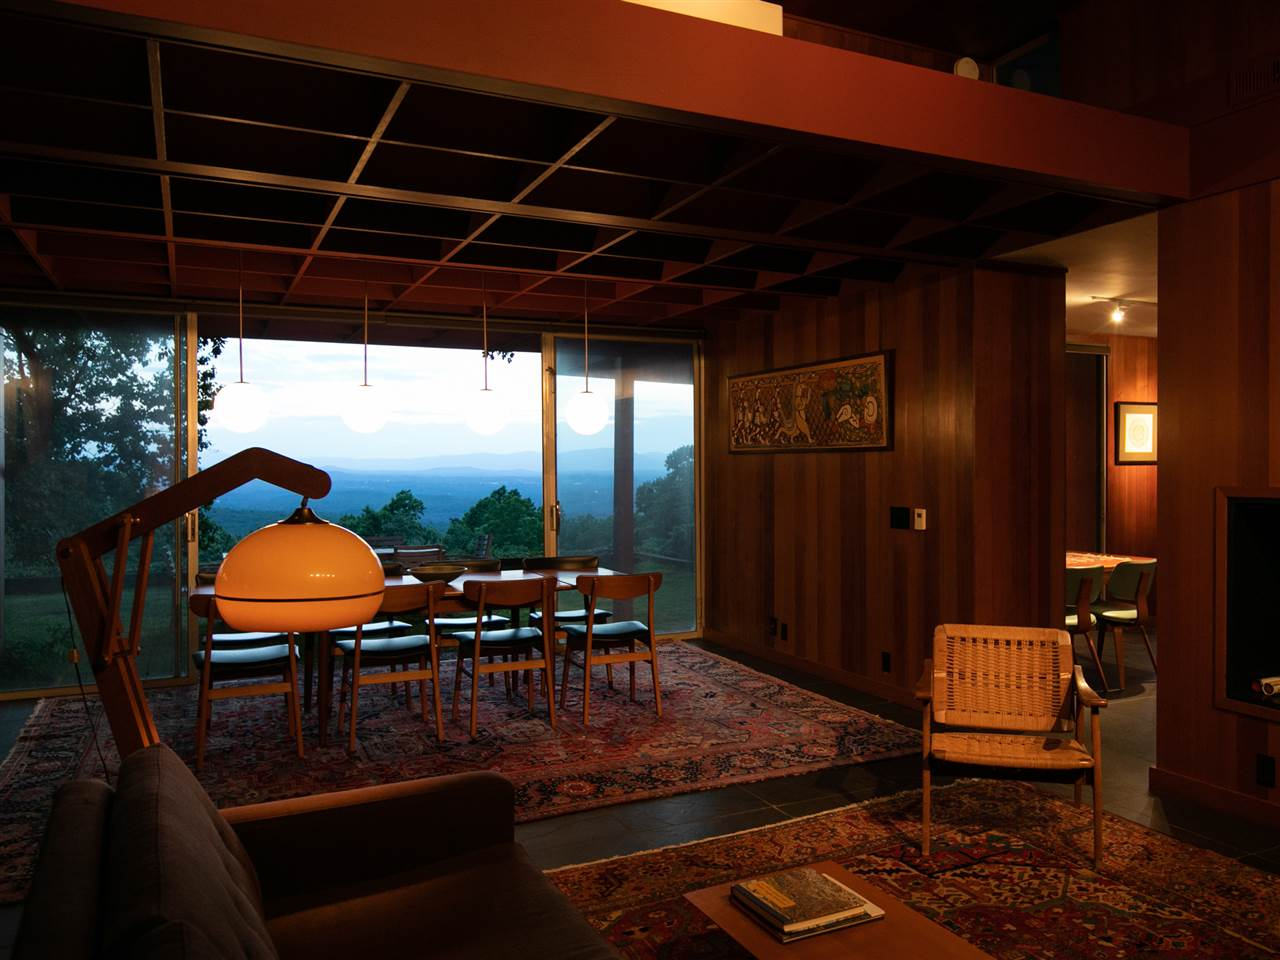 living room and dining area with evening view of mountains